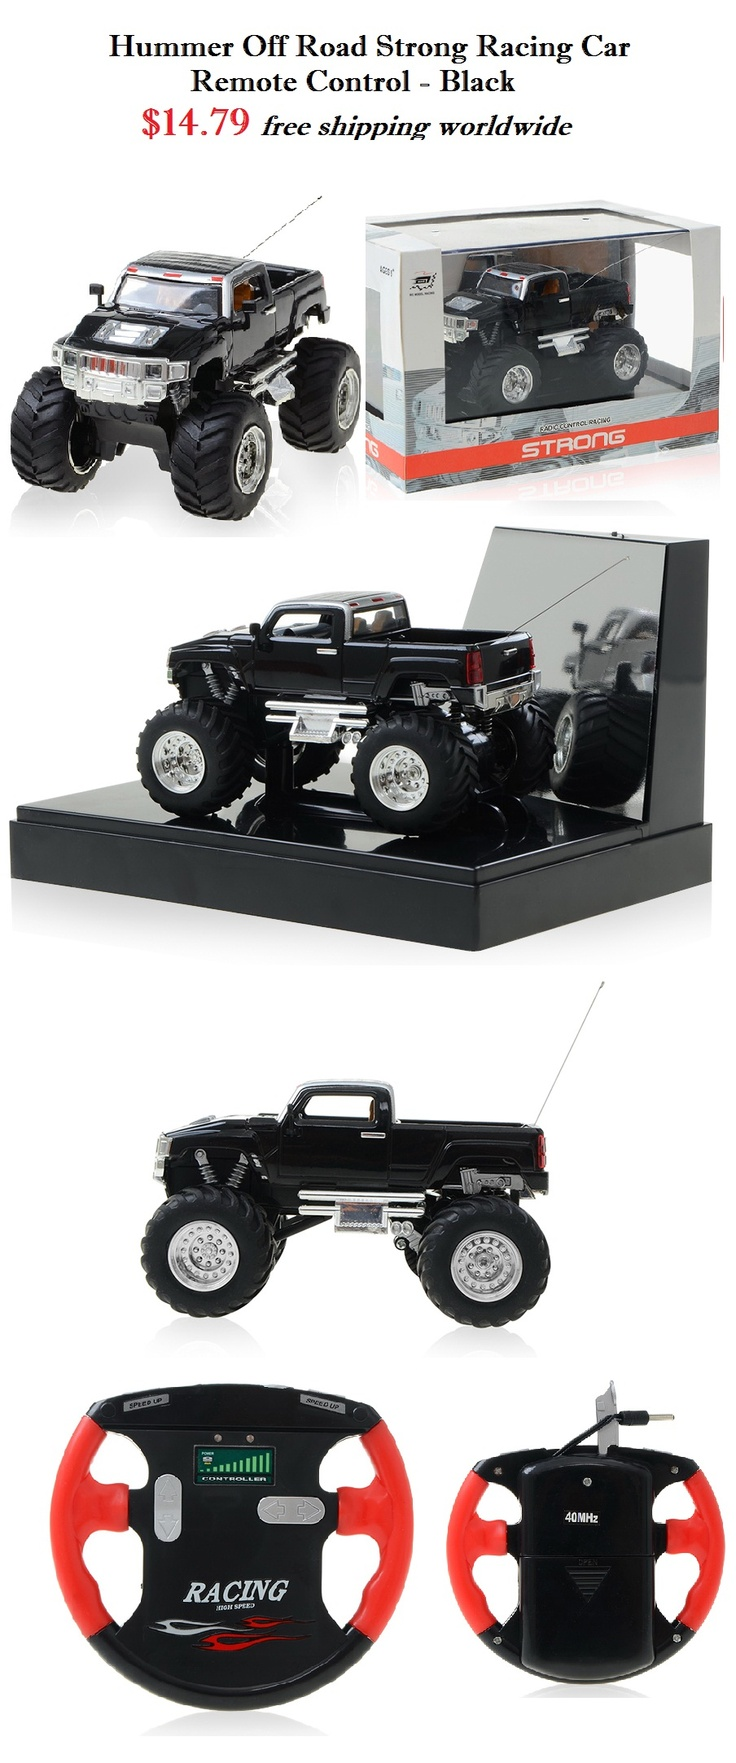 Black Hummer Strong Racing Car - Remote Control $14.79 #hummer #black #strong #racing #car #remote #control